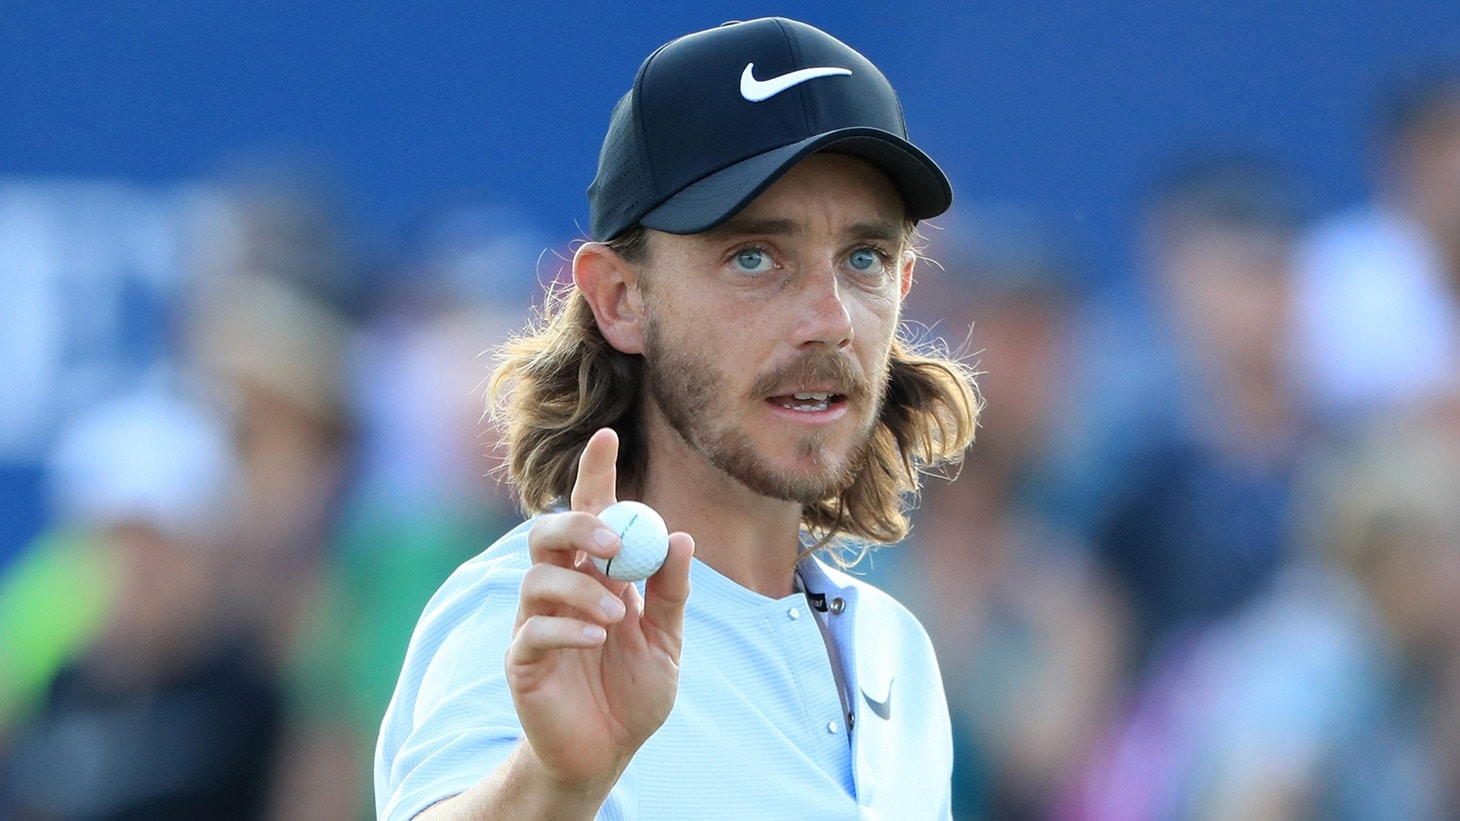 Tommy Fleetwood salutes the crowd with his Pro V1x golf ball at the 2018 Abu Dhabi Championship